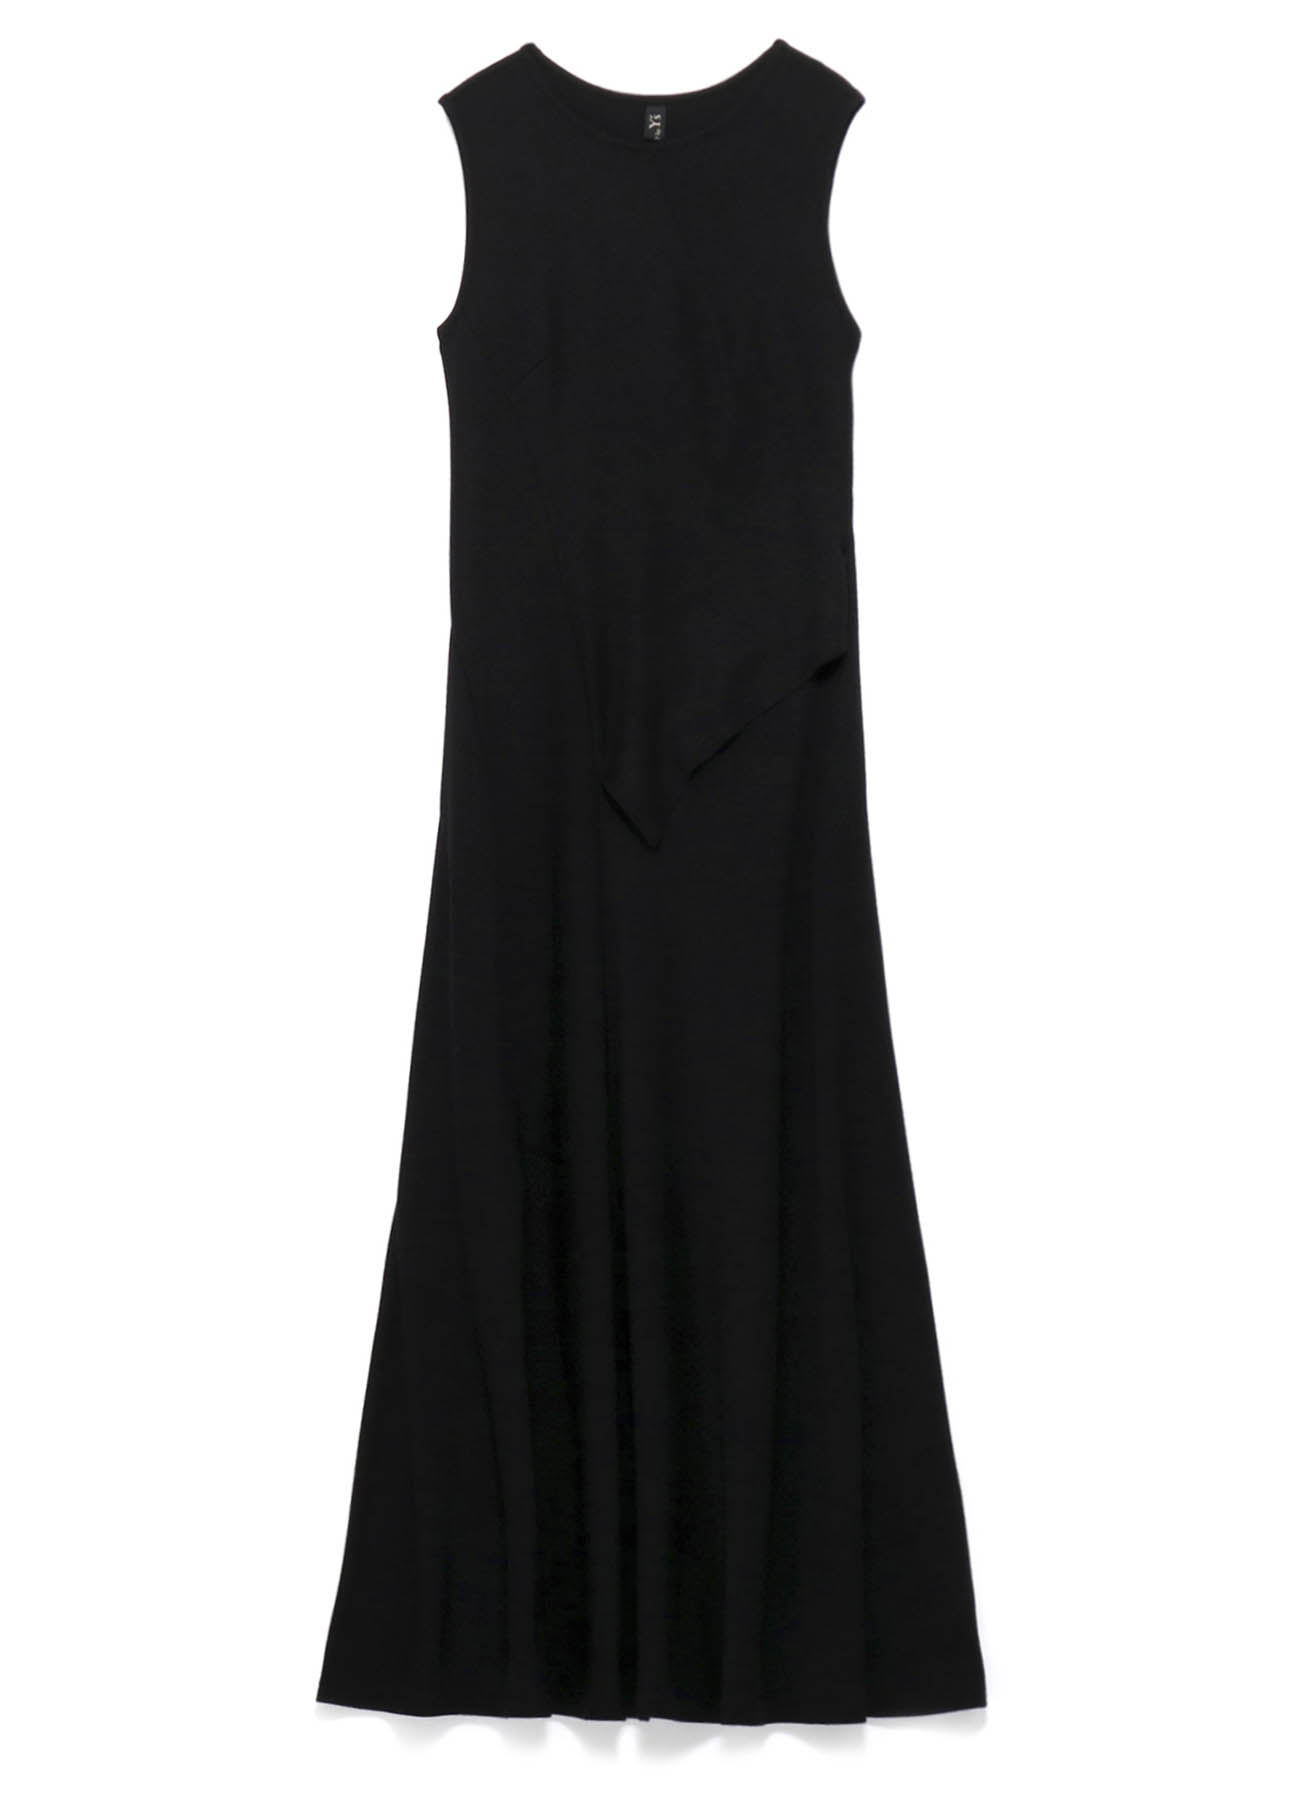 MICHIKObyY's WOOL CLEAR SMOOTH LEFT CUT OFF DRESS